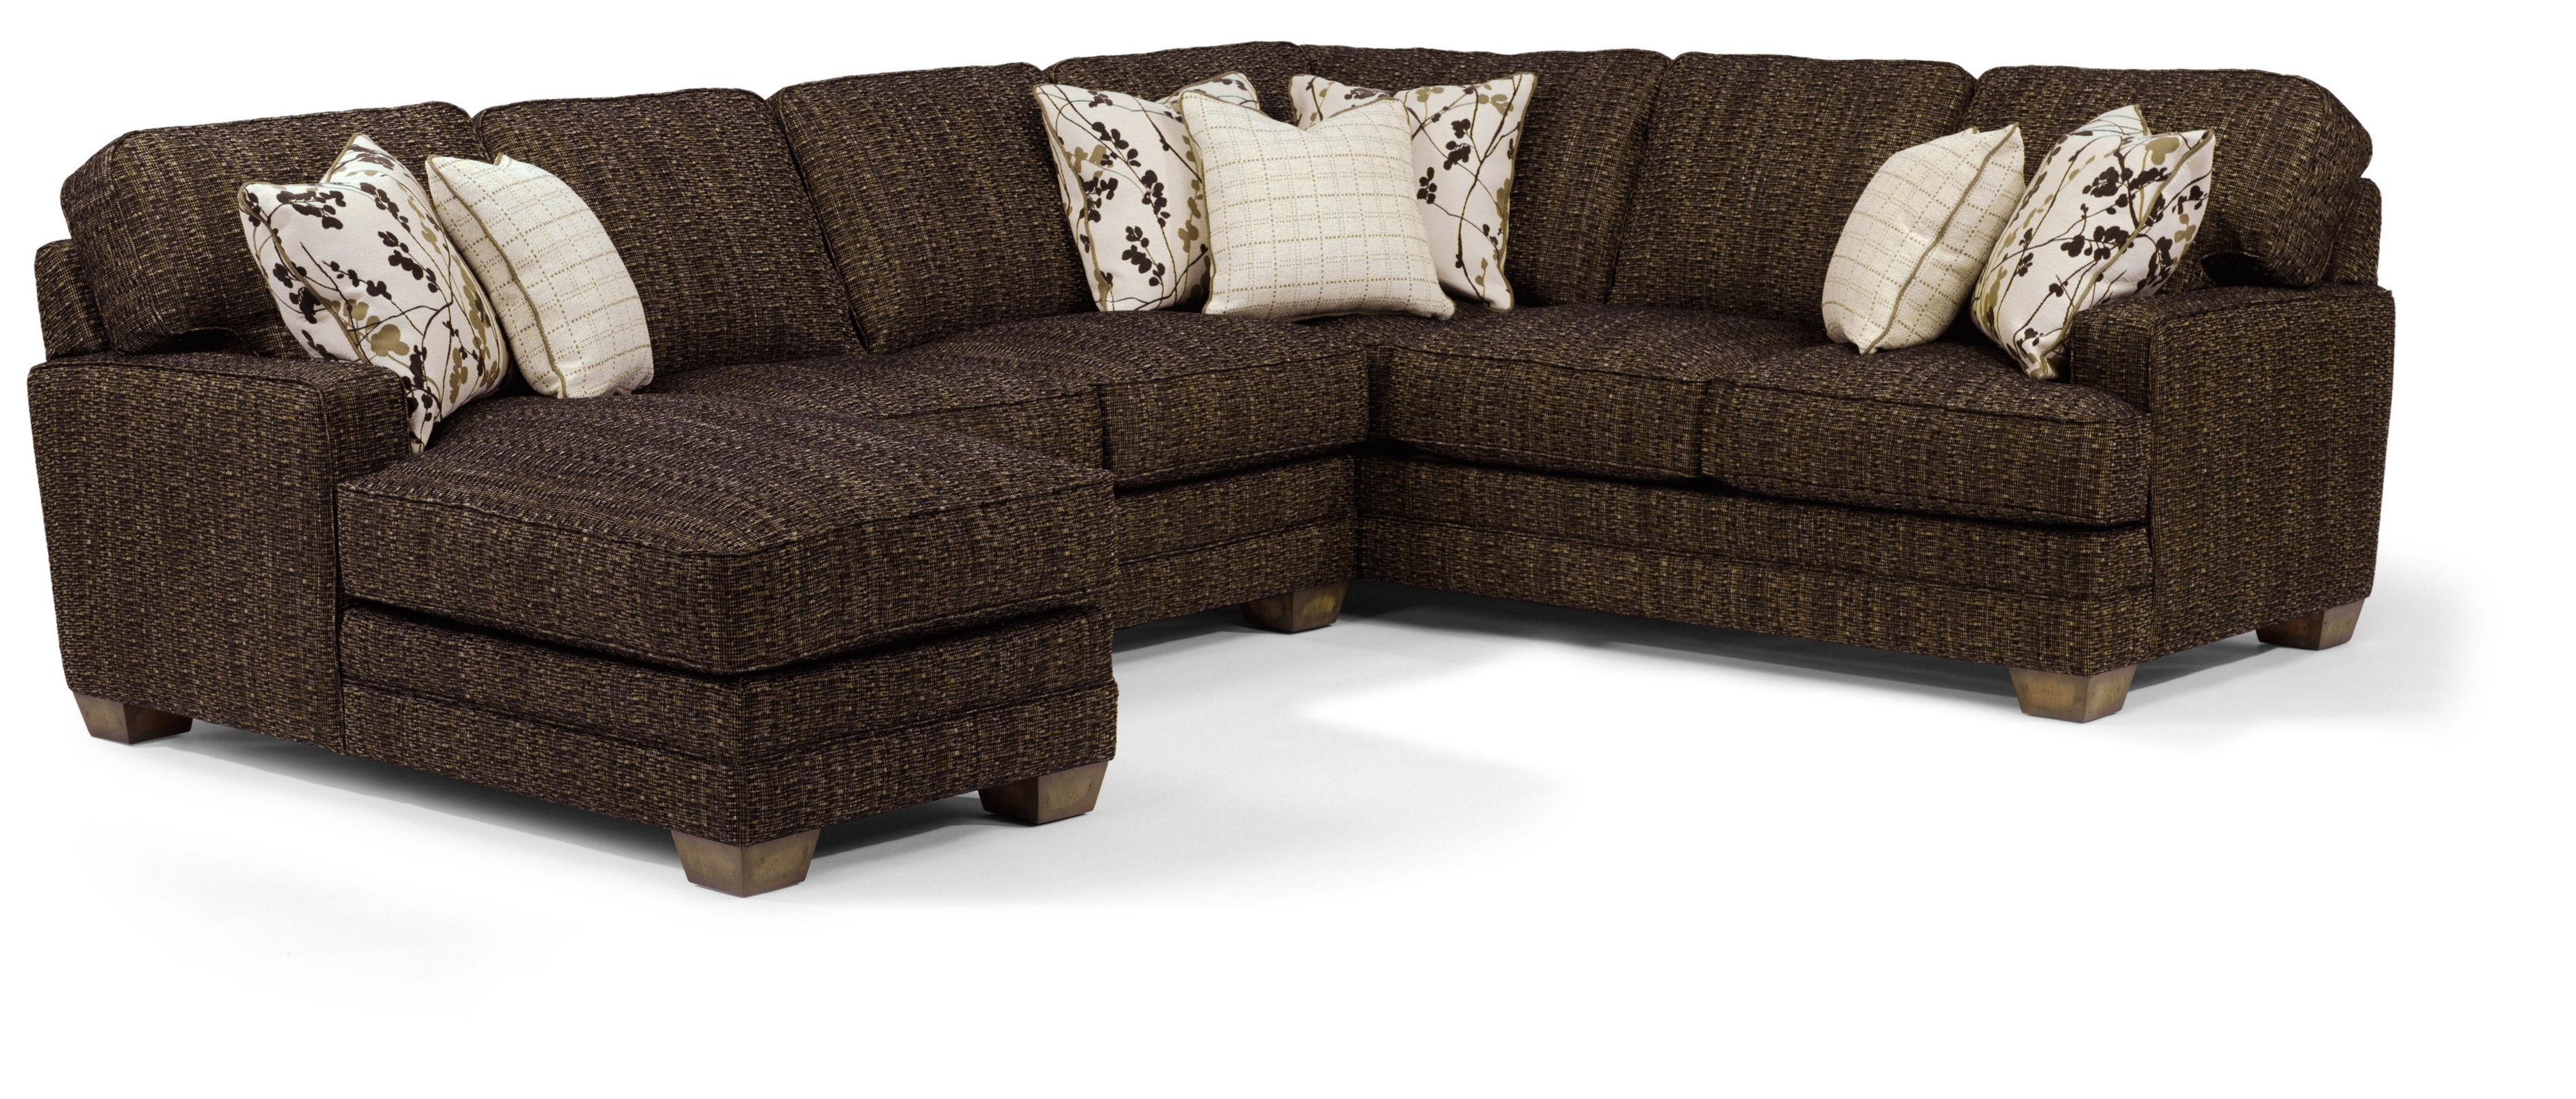 Flexsteel That's My Style <B>Customizable</b> 3 Piece Sectional Sofa Throughout Most Recent Delano 2 Piece Sectionals With Laf Oversized Chaise (View 17 of 20)